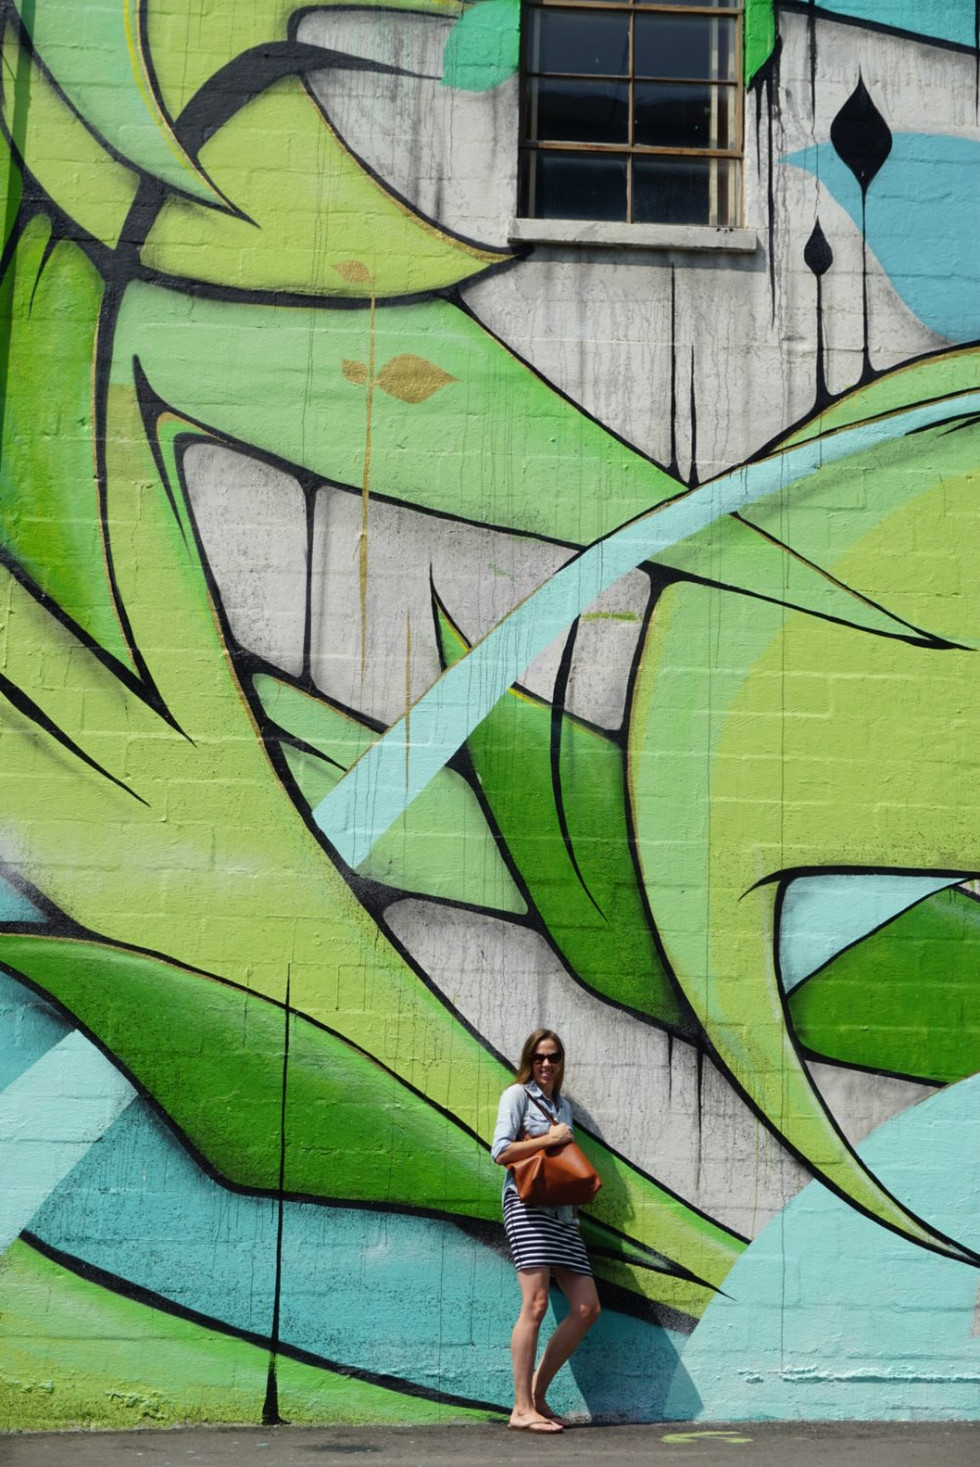 12 Nashville Murals From The Gulch to 12 Avenue South